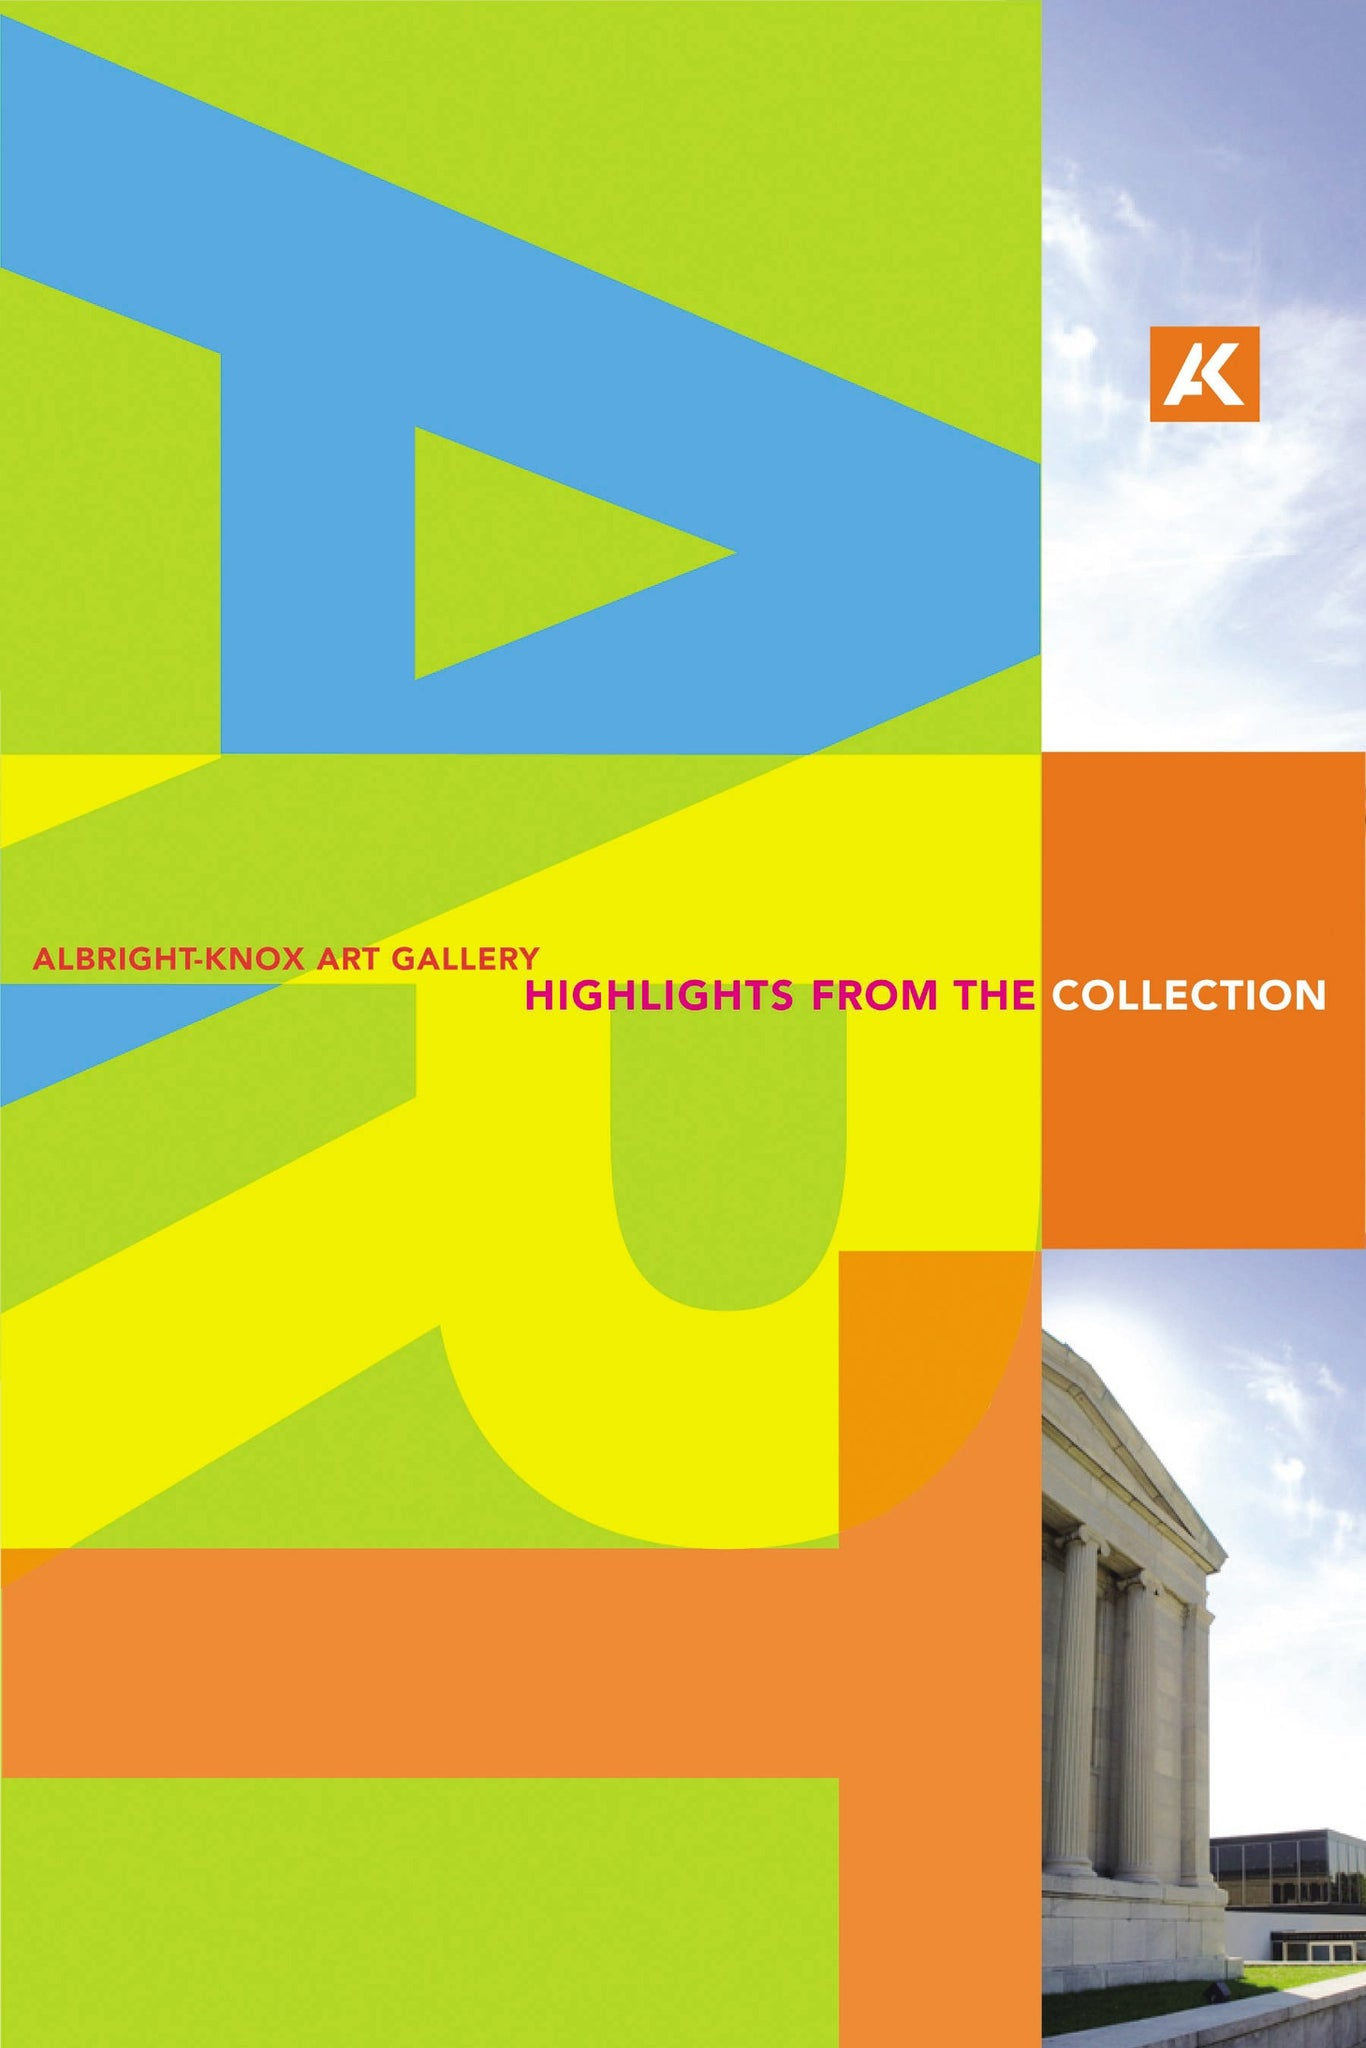 Albright-Knox Art Gallery: Highlights from the Collection